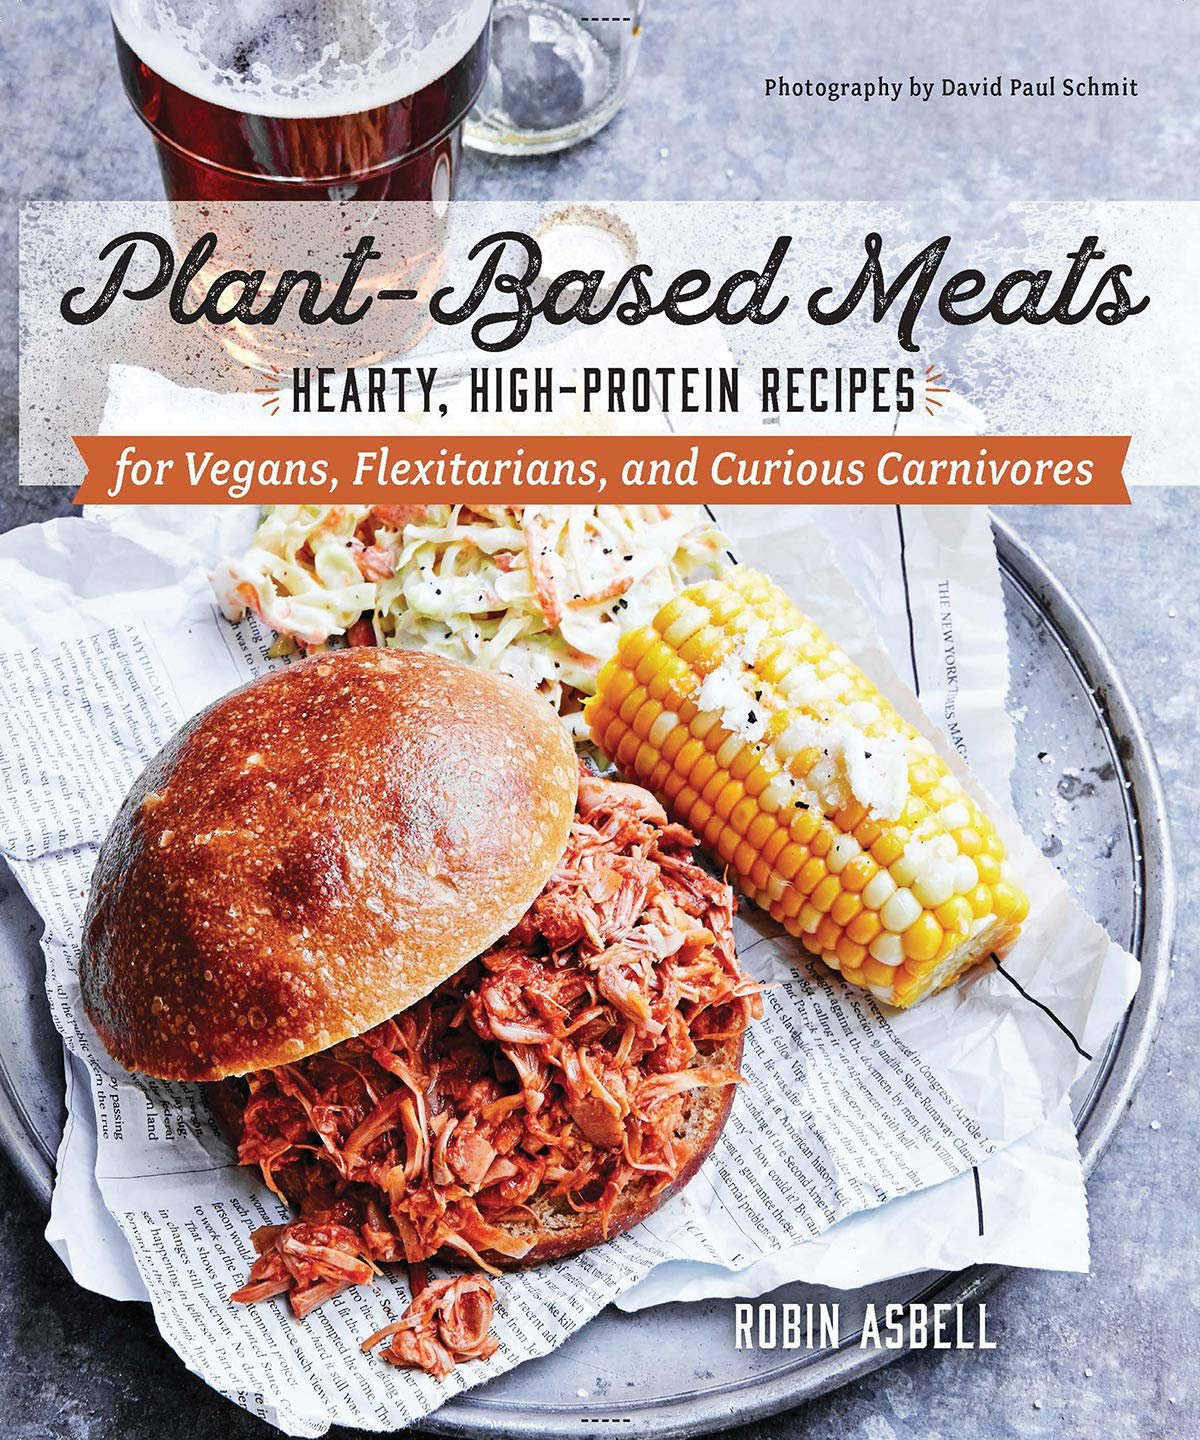 Plant-Based Meats - Hearty, High-Protein Recipes for Vegans, Flexitarians, and Curious Carnivores - Robin Asbell